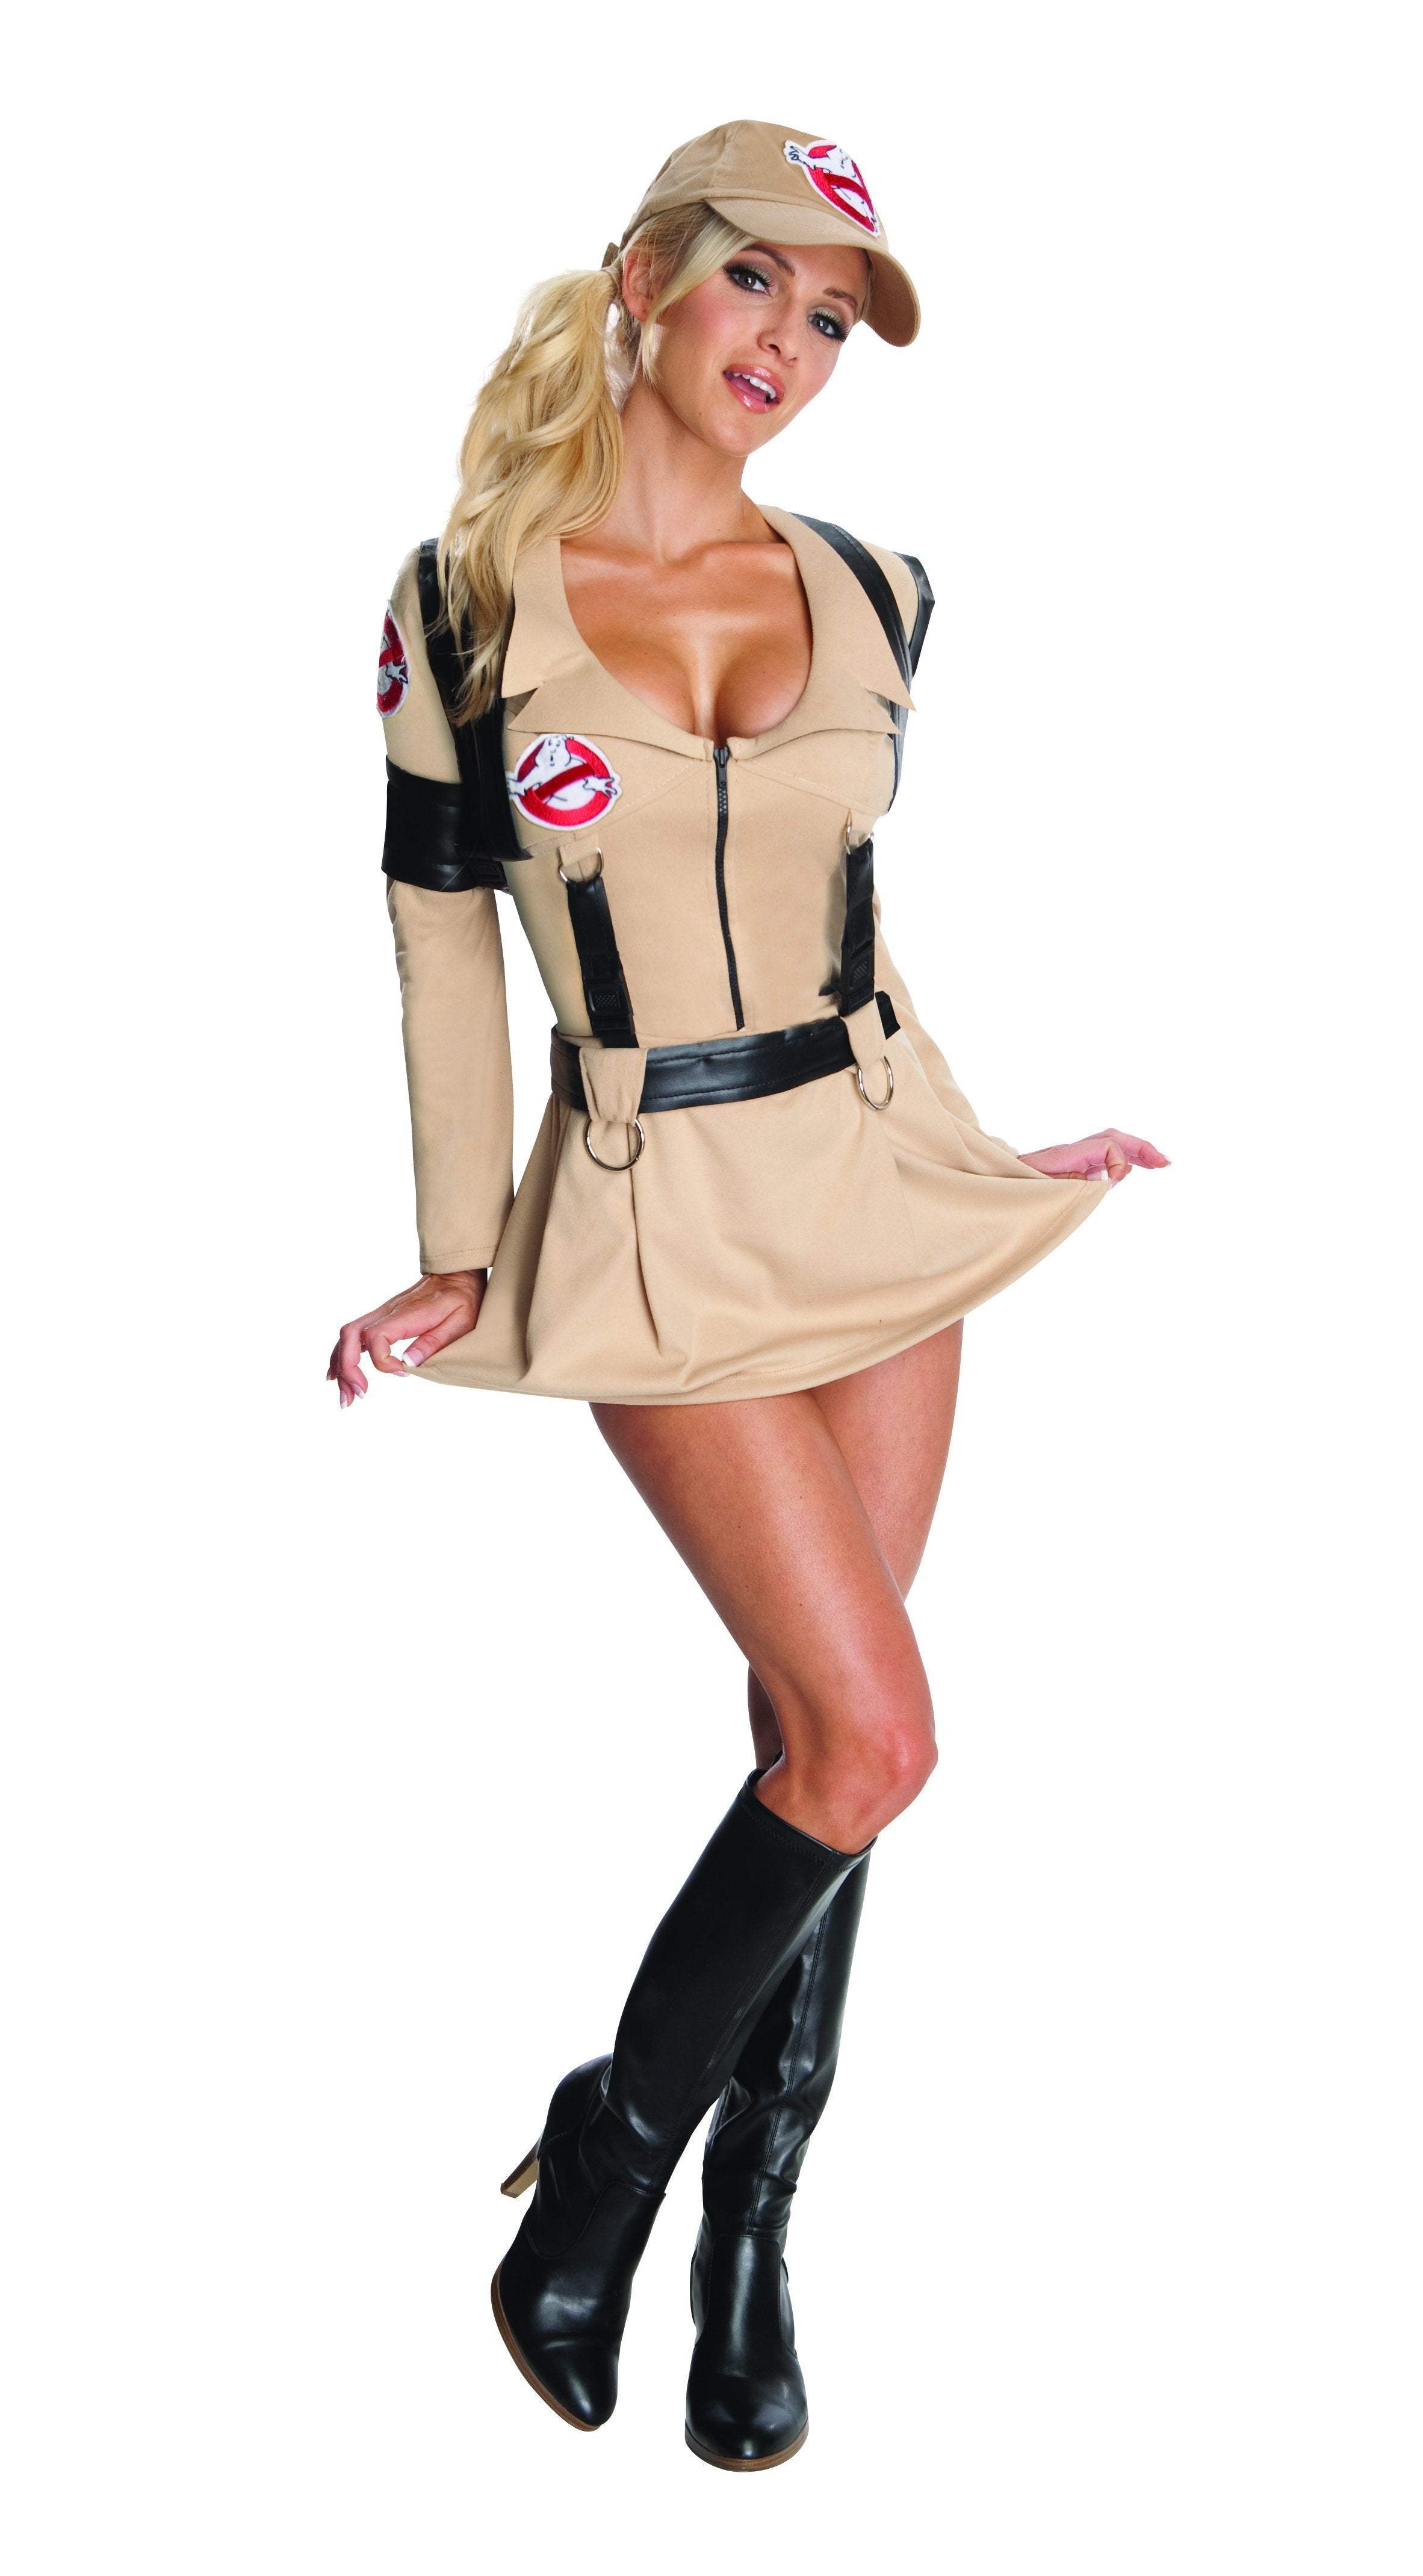 Rubies Costumes LARGE Women's Ghostbuster Costume - Ghostbusters